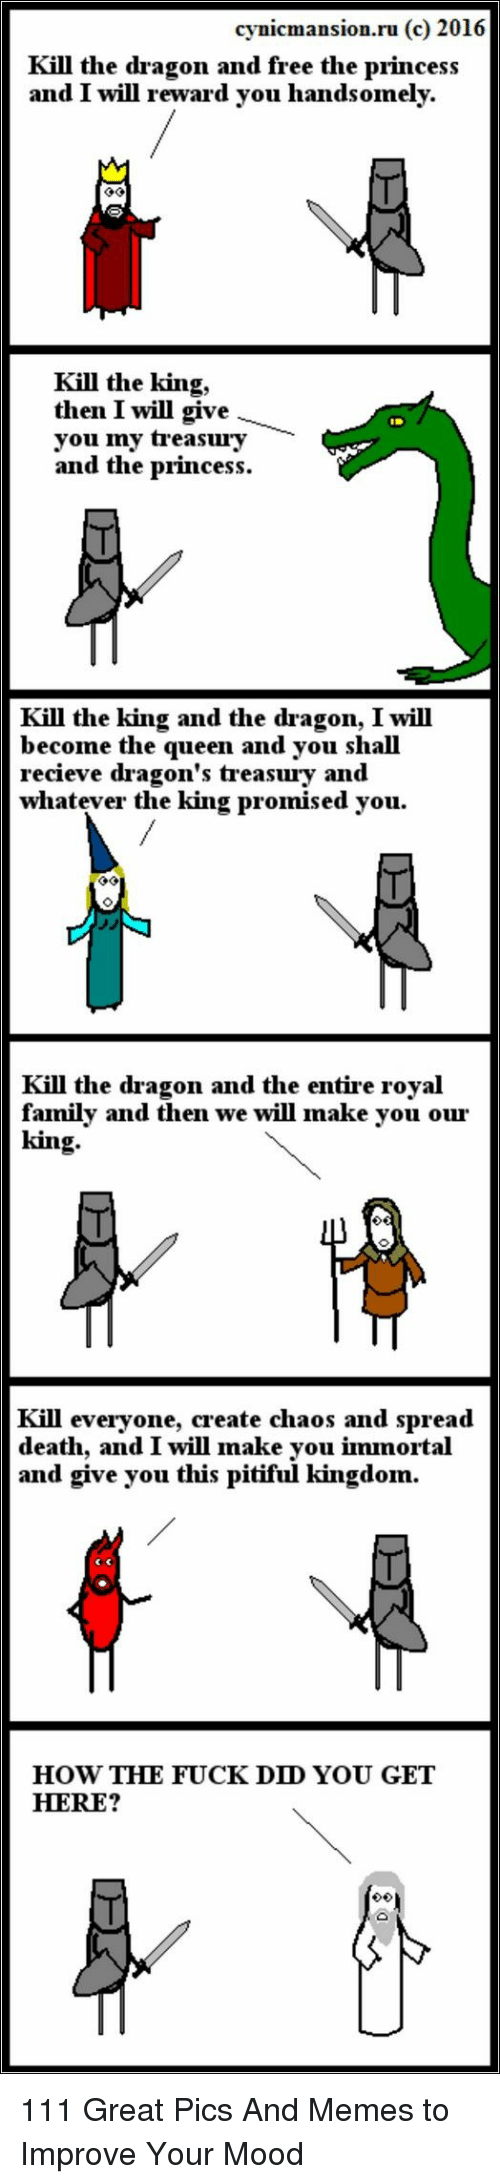 Family, Memes, and Mood: cynicmansion.ru (c) 2016  Kill the dragon and free the princes:s  and I will reward vou handsomely.  Kill the king,  then I will give  you ny treasury  and the princess.  Kill the king and the dragon, I will  become the queen and you shall  recieve dragon's treasury and  whatever the king promised you.  Kill the dragon and the entire royal  family and then we will make you our  king  Kill everyone, create chaos and spread  death, and I will make you immortal  and give you this pitiful kingdon.  HOW THE FUCK DD YOU GET  HERE? 111 Great Pics And Memes to Improve Your Mood